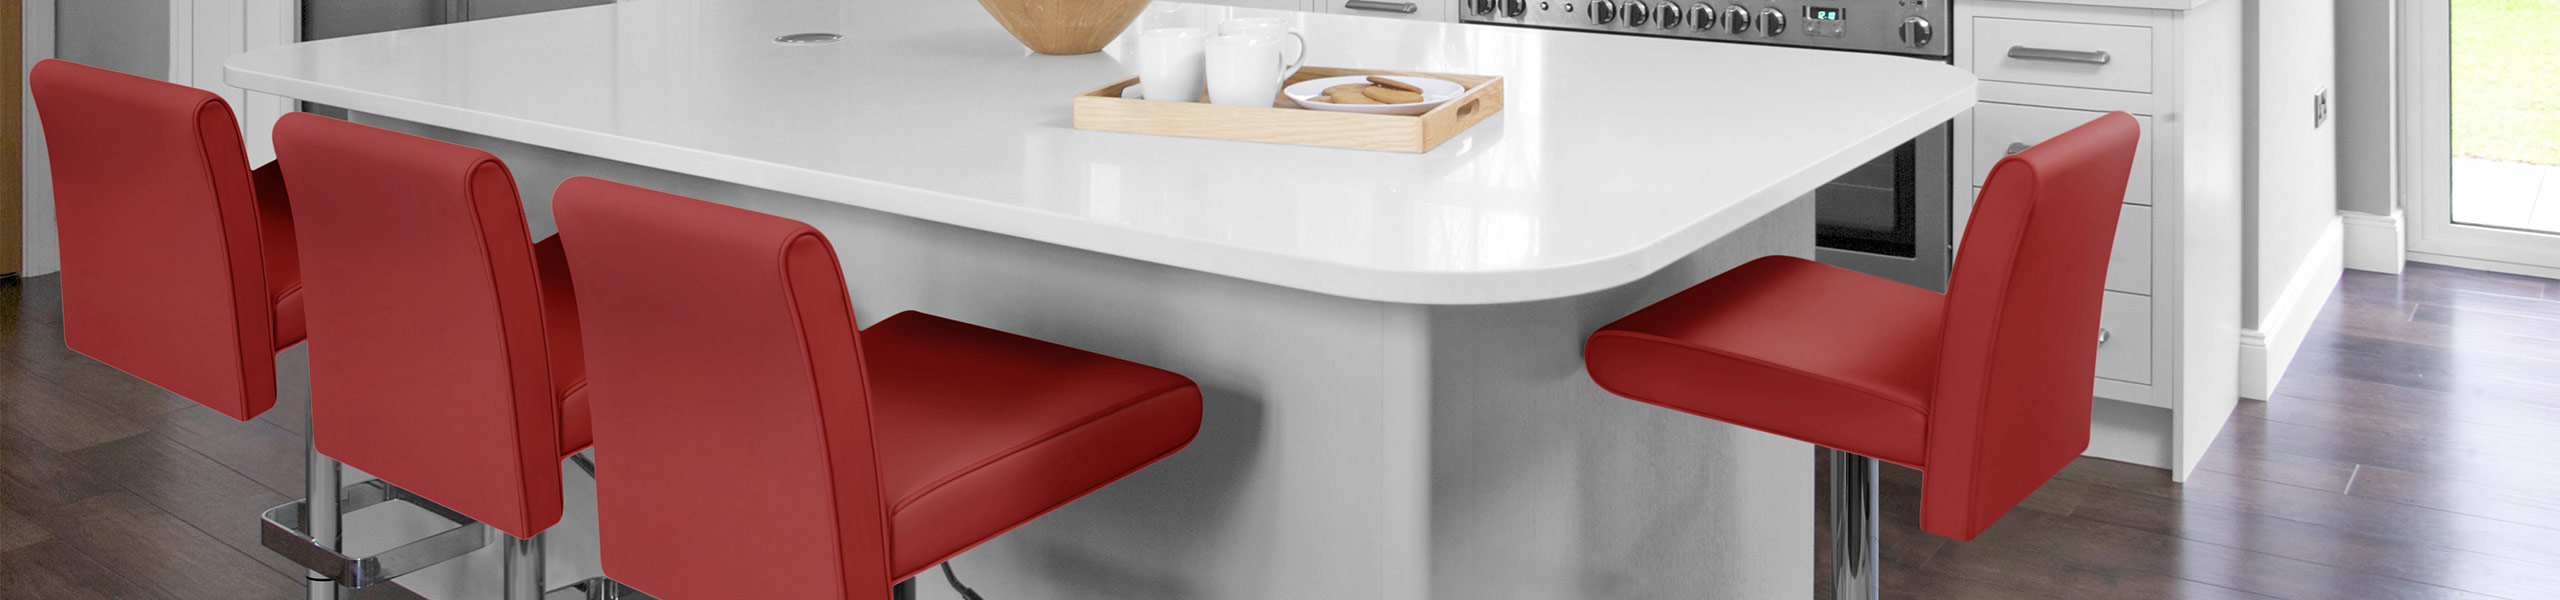 Siena Bar Stool Red Video Banner